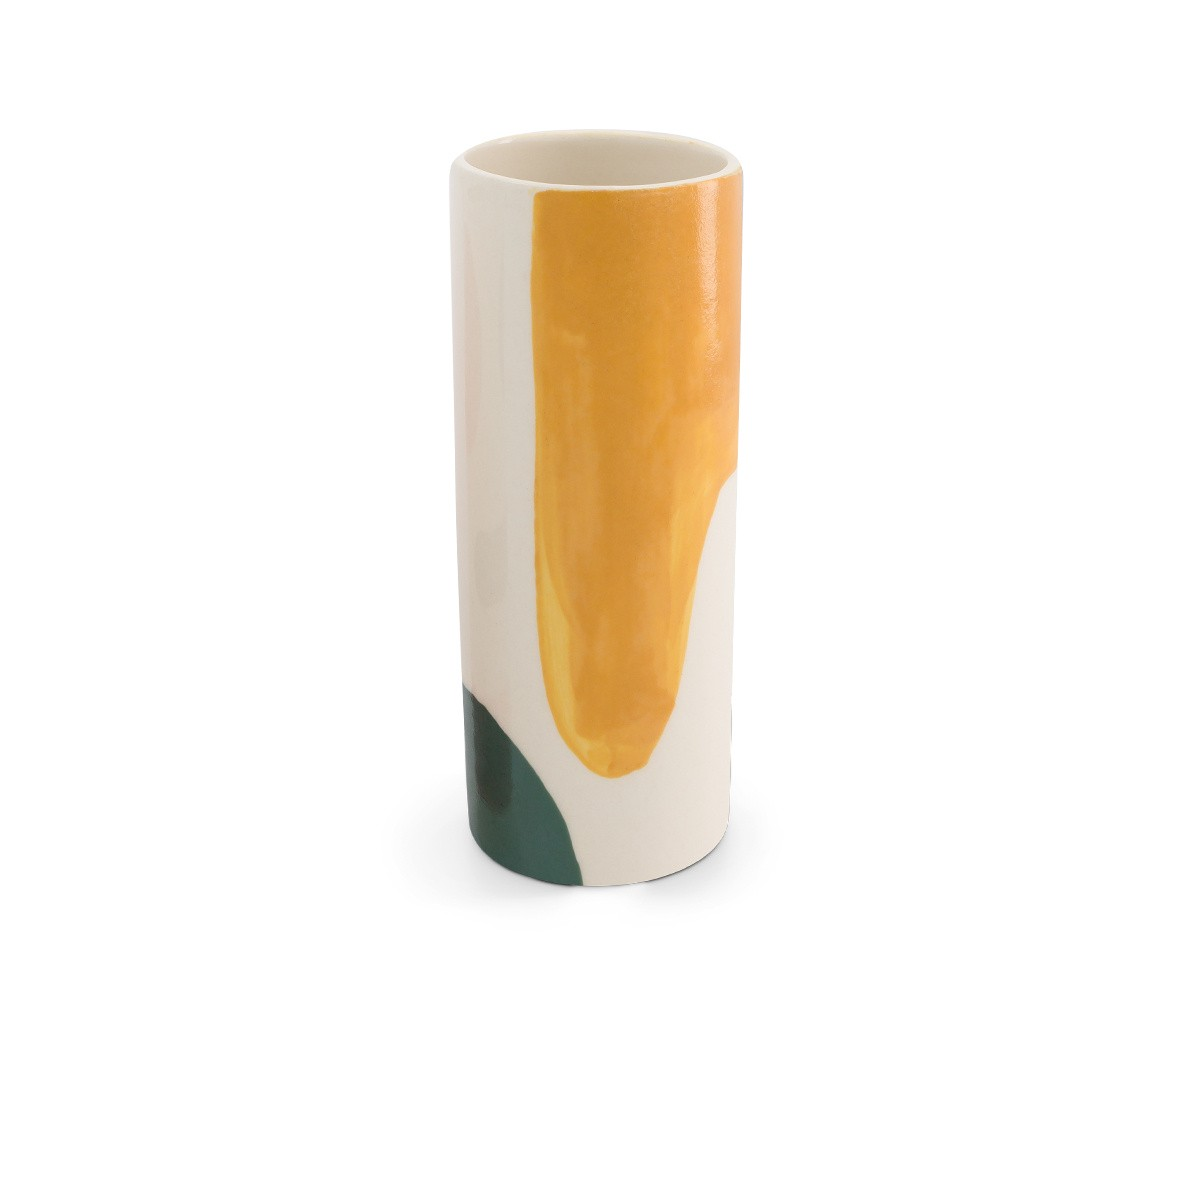 Domino pot medium model with green and mustard pattern